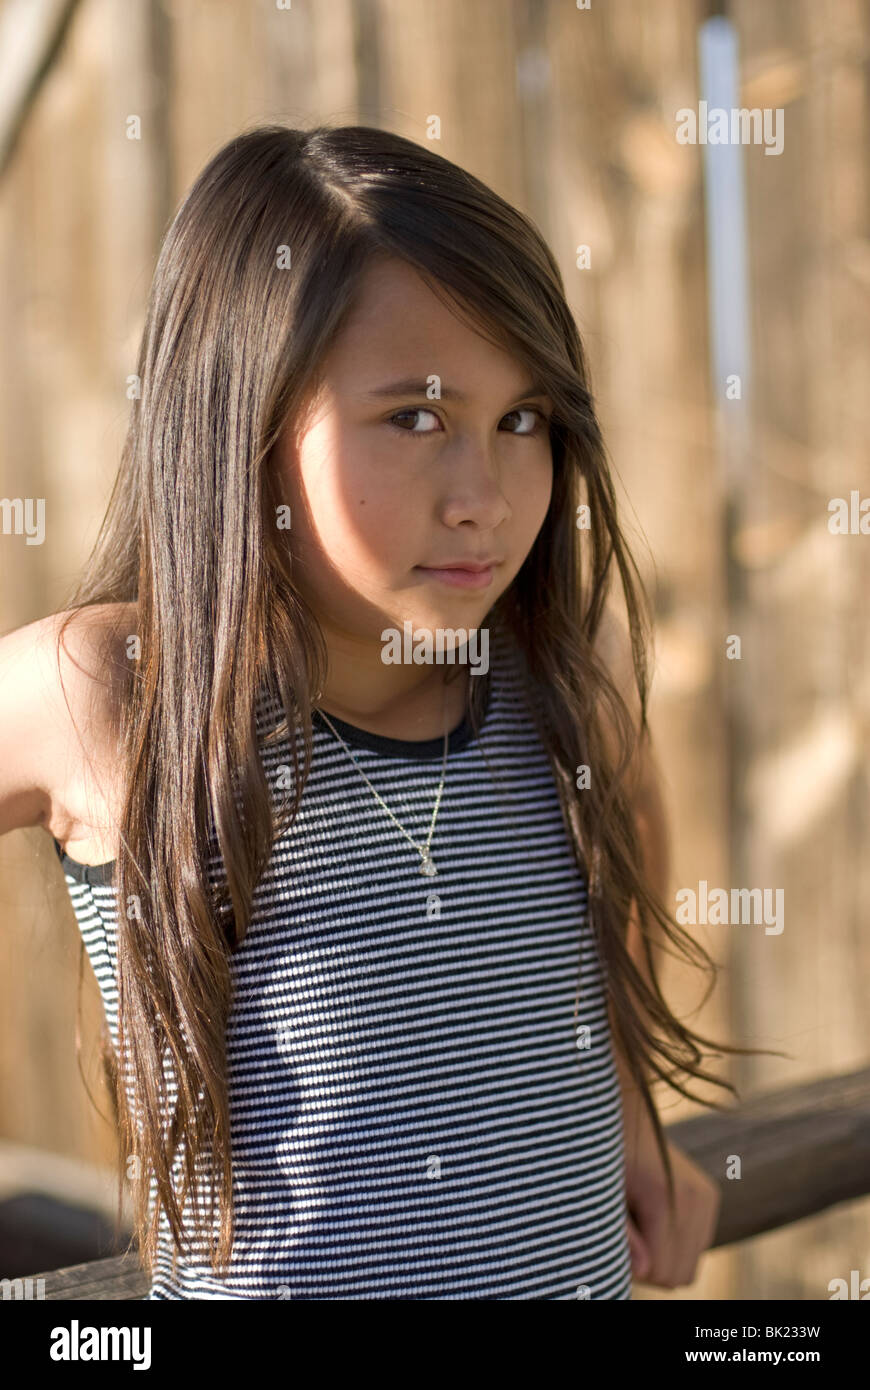 a cute 7-9 year old mixed race (asian/caucasian) girl (released